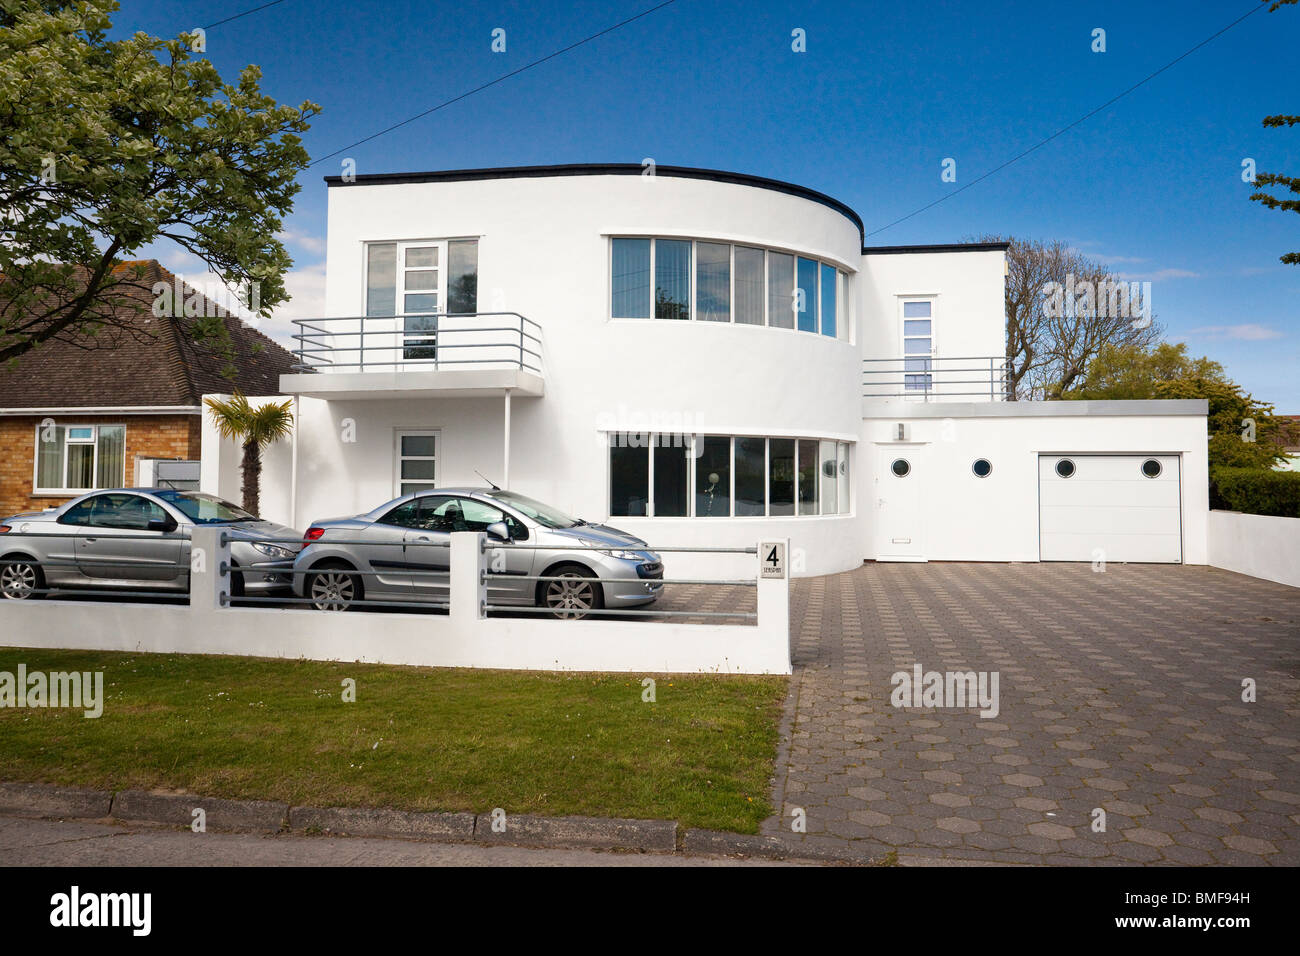 Art Deco style house at Frinton On Sea, Essex, UK